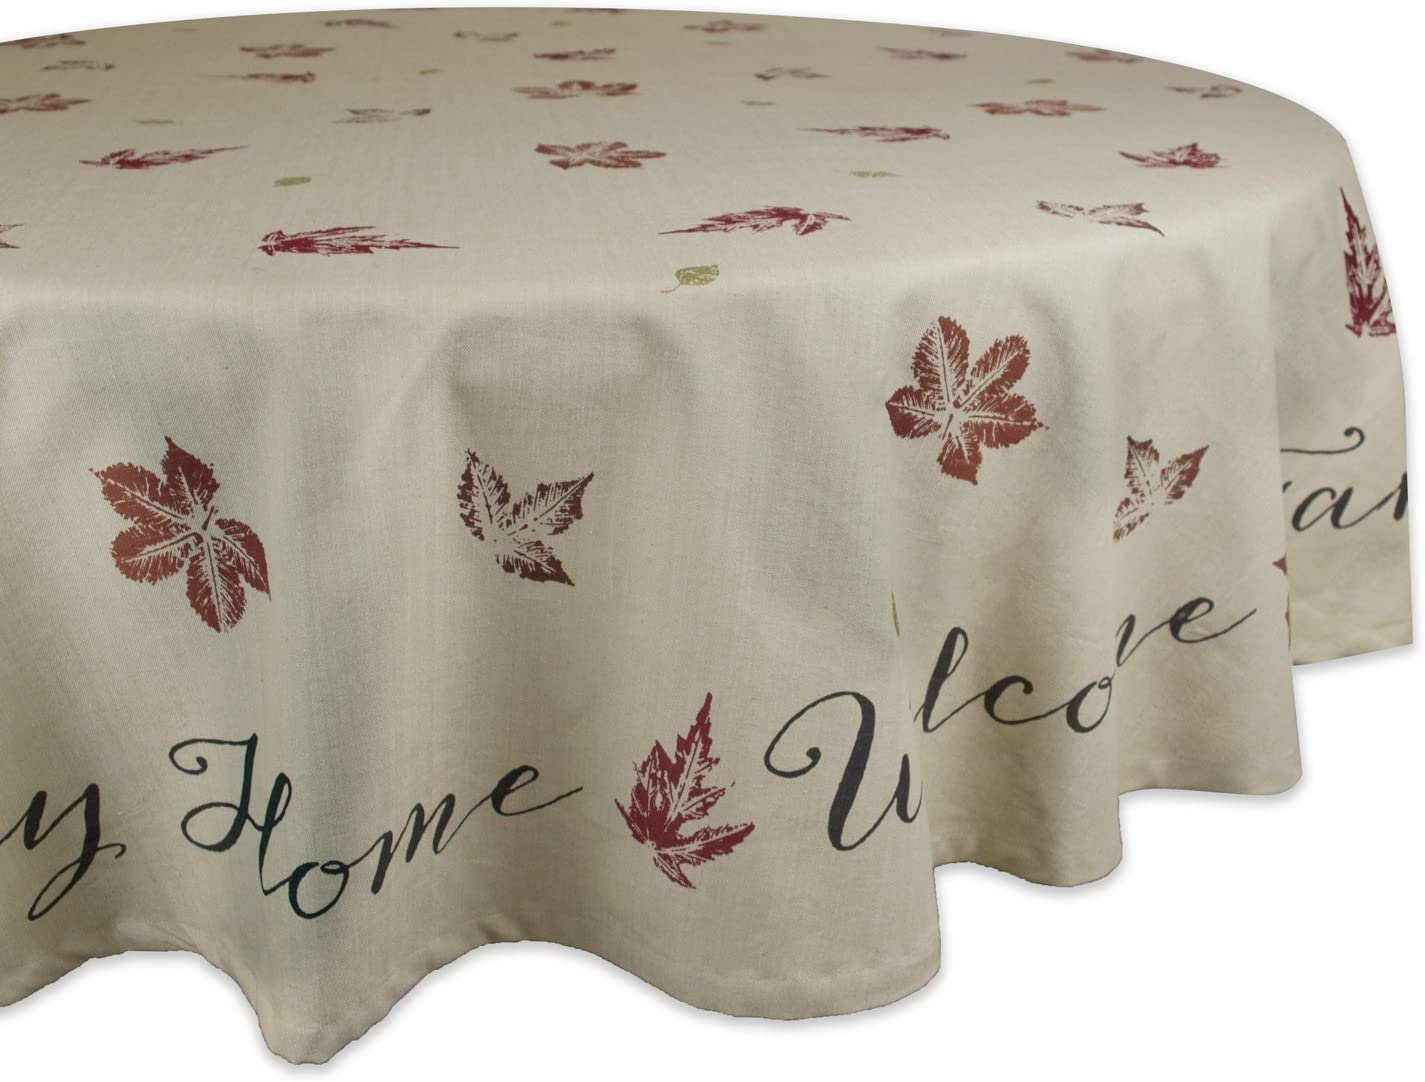 "DII 100% Cotton, Machine Washable, Printed Kitchen Tablecloth For Dinner Parties, Fall, Holidays & Thanksgiving - 70"" Round, Seats 4-6 People, Rustic Leaves"